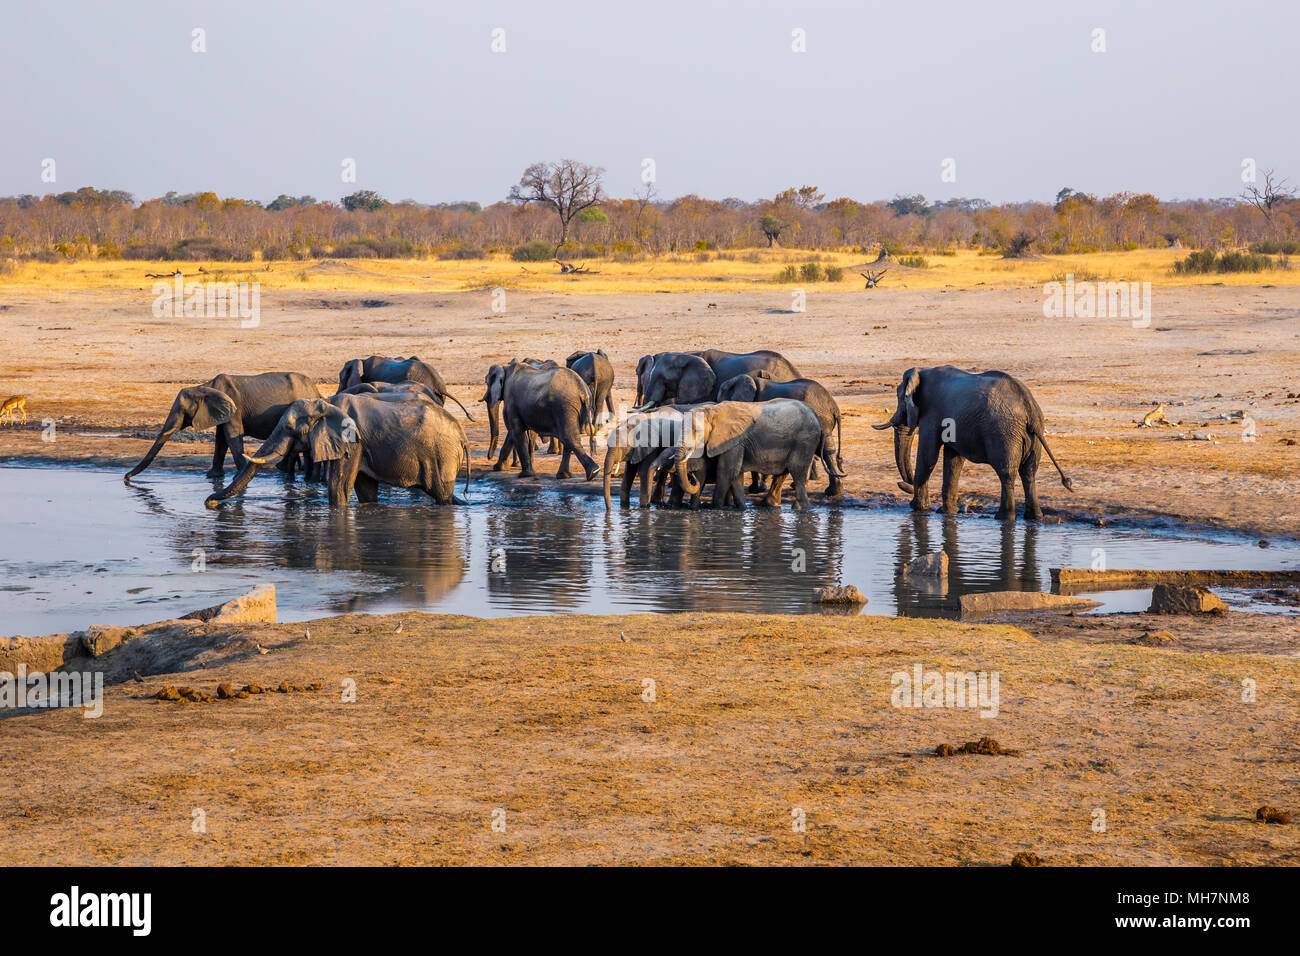 Elephants gather by one of the remaining waterholes during a drought in Hwange National Park, Zimbabwe. September 9. 2016. - Stock Image